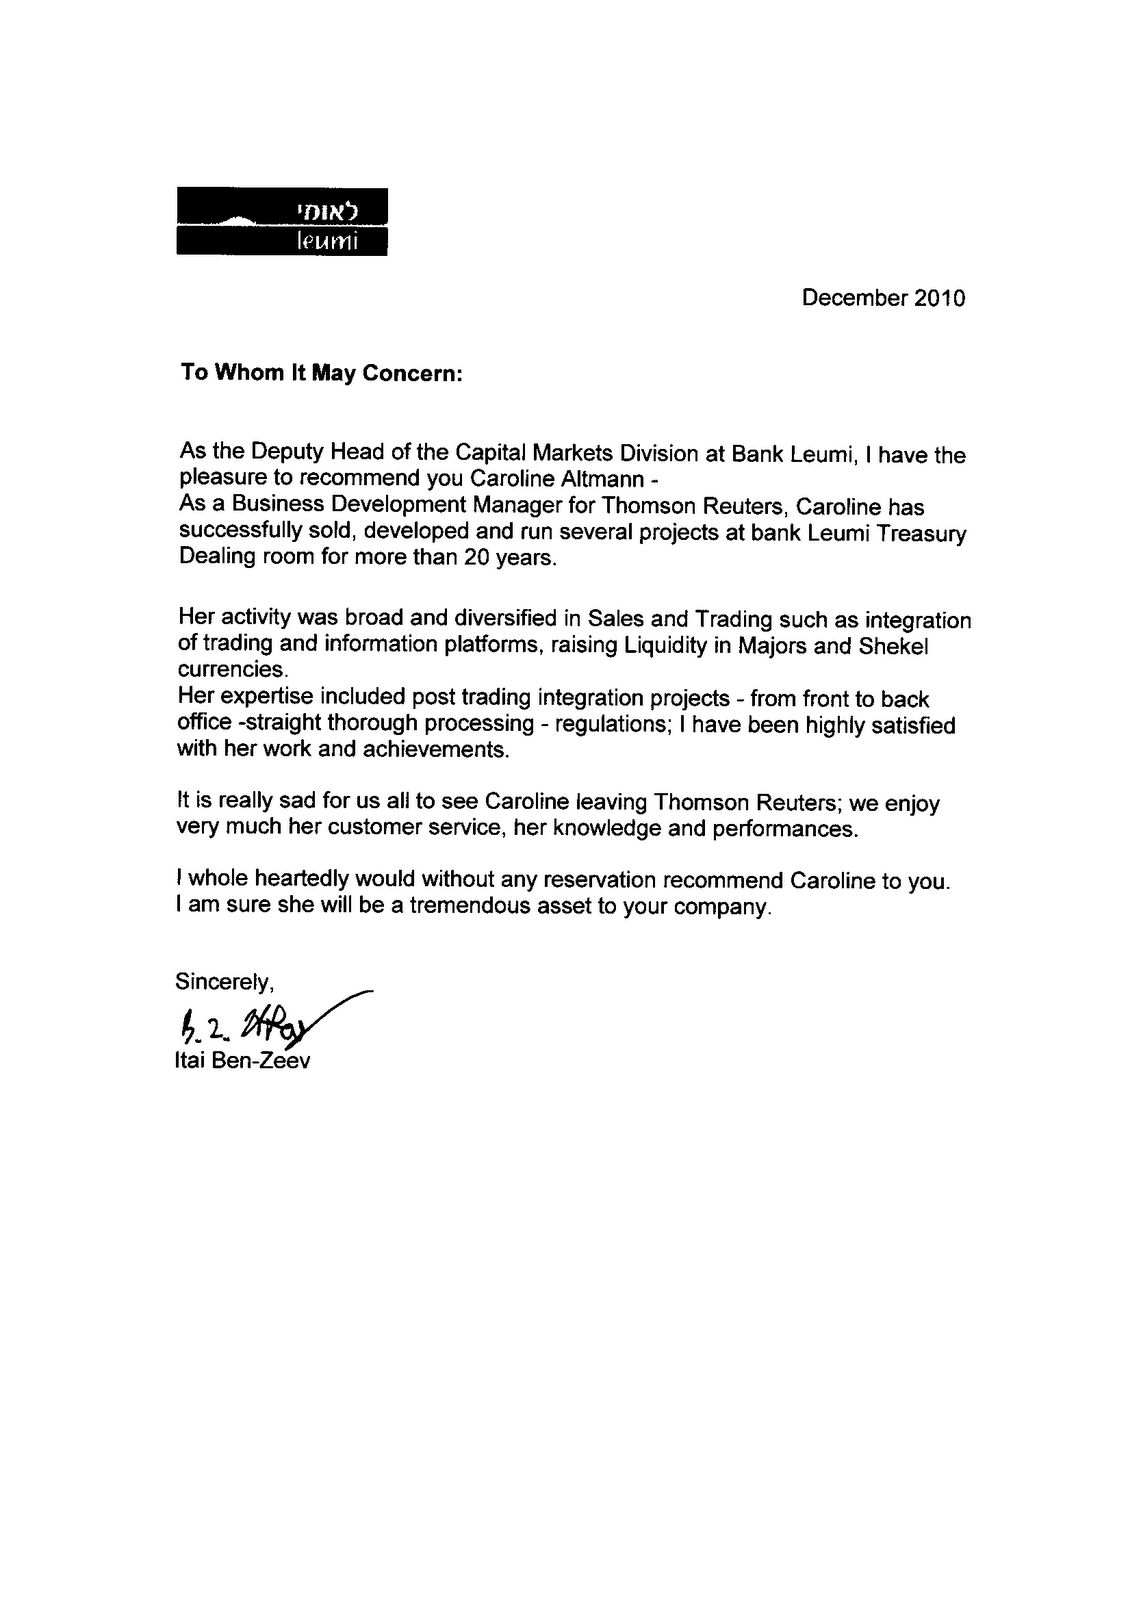 recommendation letter for skylawn skylawn funeral home